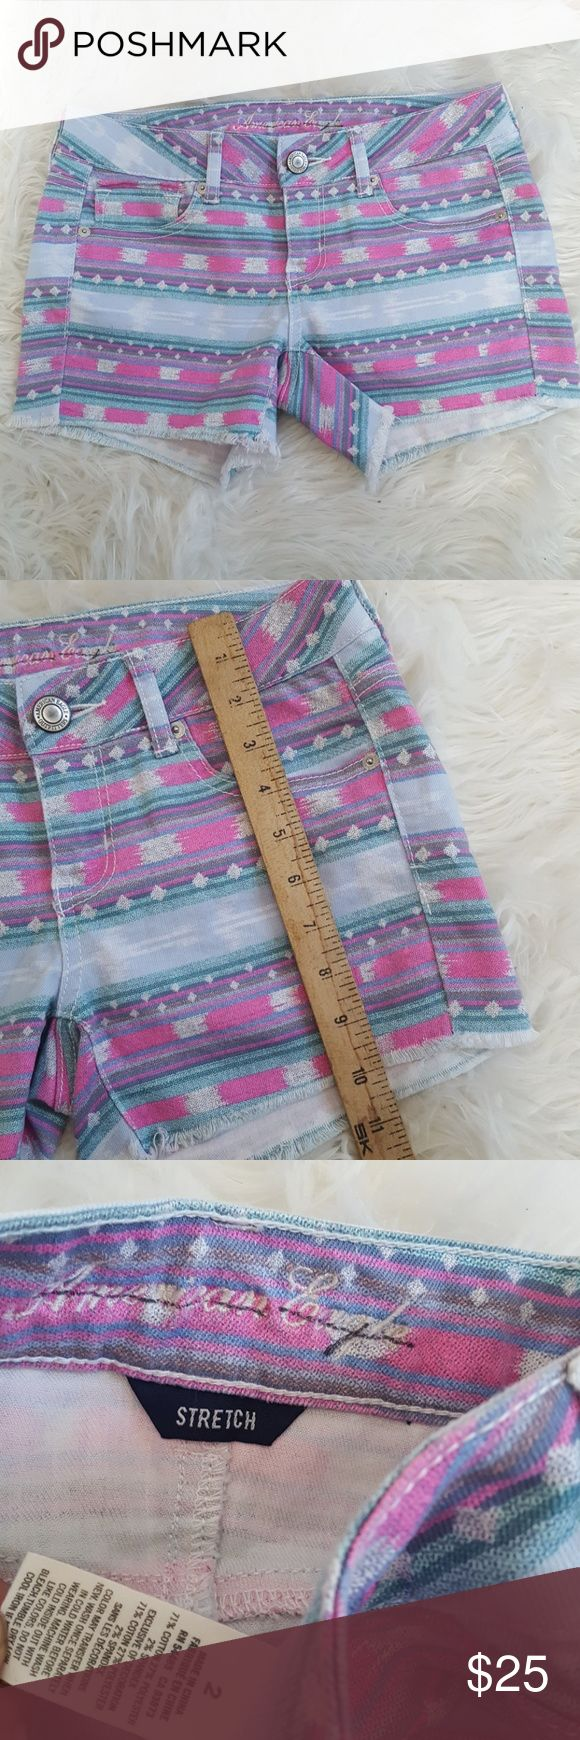 American Eagle tribal shorts size 2 American Eagle tribal shorts  Size 2 Tribal geometric print Excellent condition American Eagle Outfitters Shorts